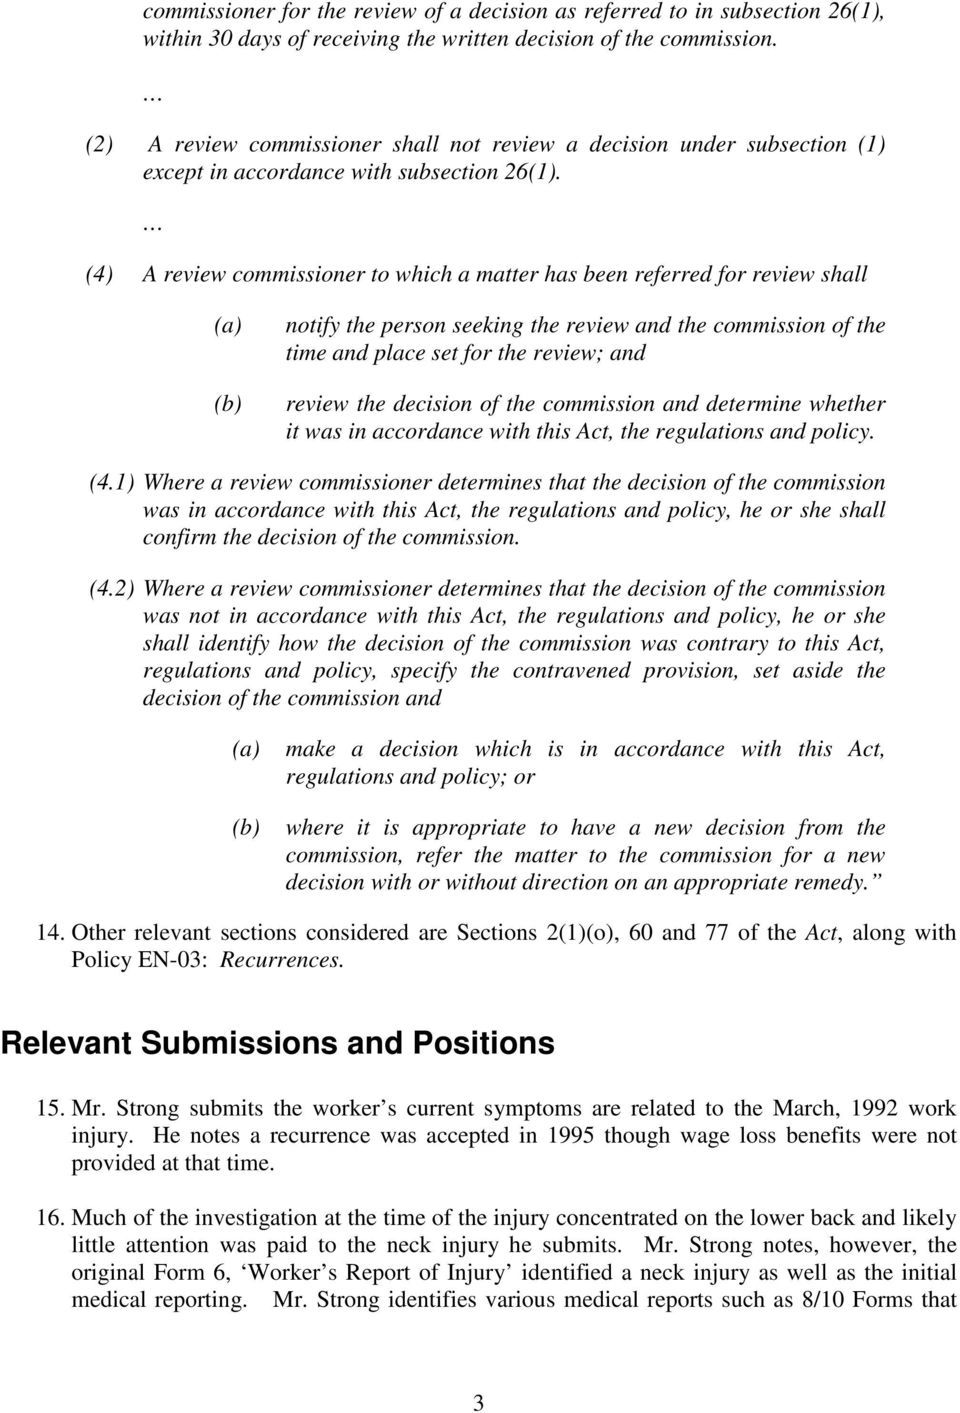 (4) A review commissioner to which a matter has been referred for review shall (a) (b) notify the person seeking the review and the commission of the time and place set for the review; and review the